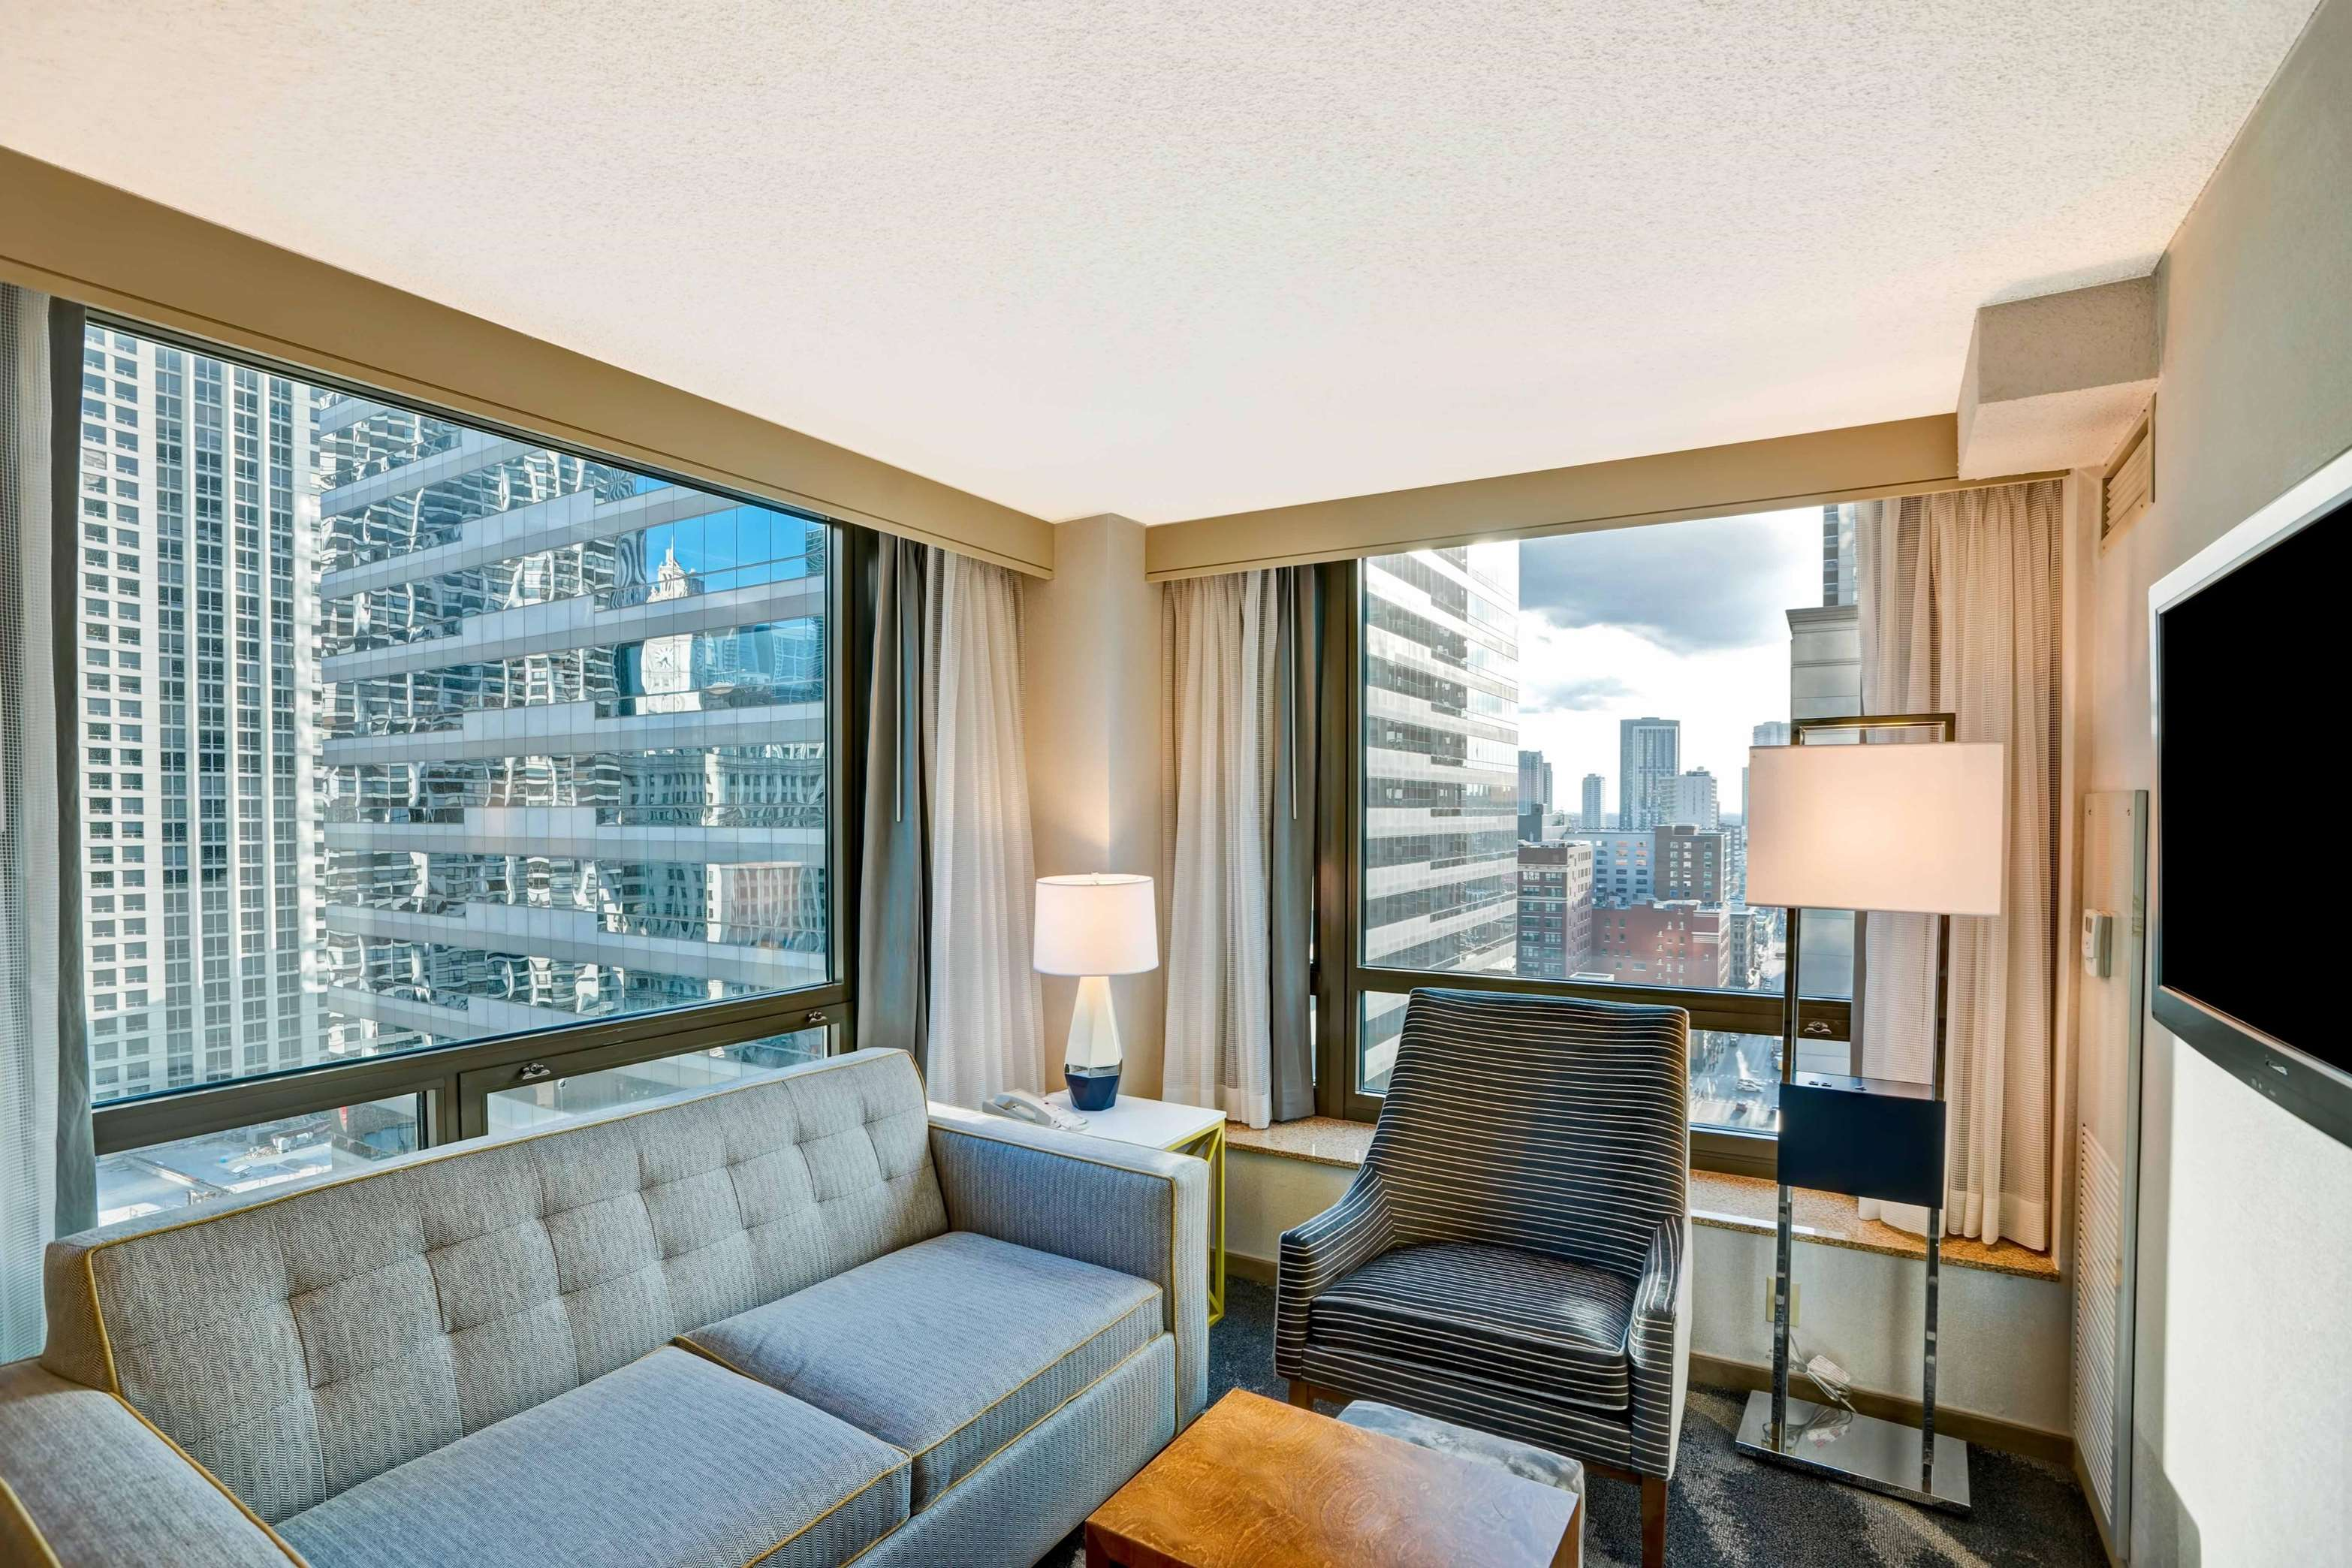 Homewood Suites by Hilton Chicago-Downtown image 38